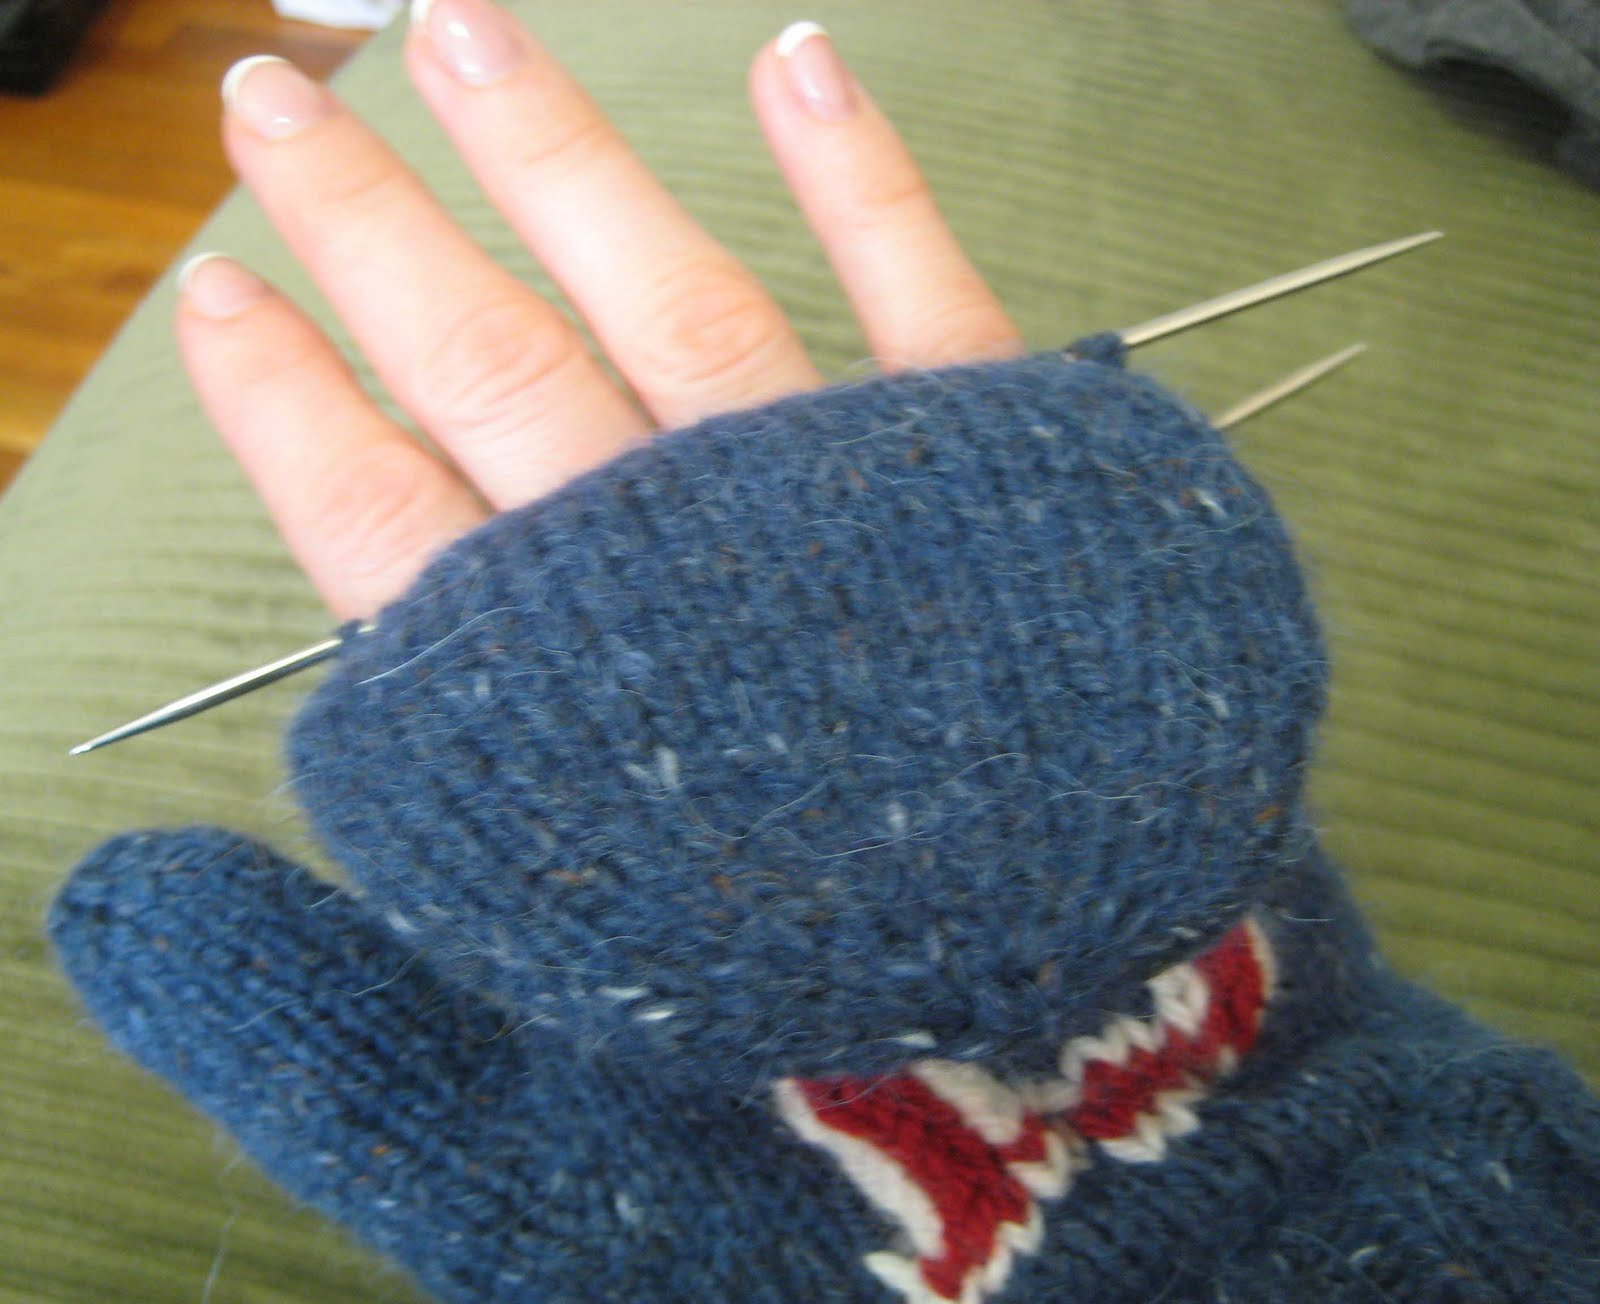 Knitting Stitches On Waste Yarn : ChemKnits: Convertible Fenway Mitts (Convertible Mittens)